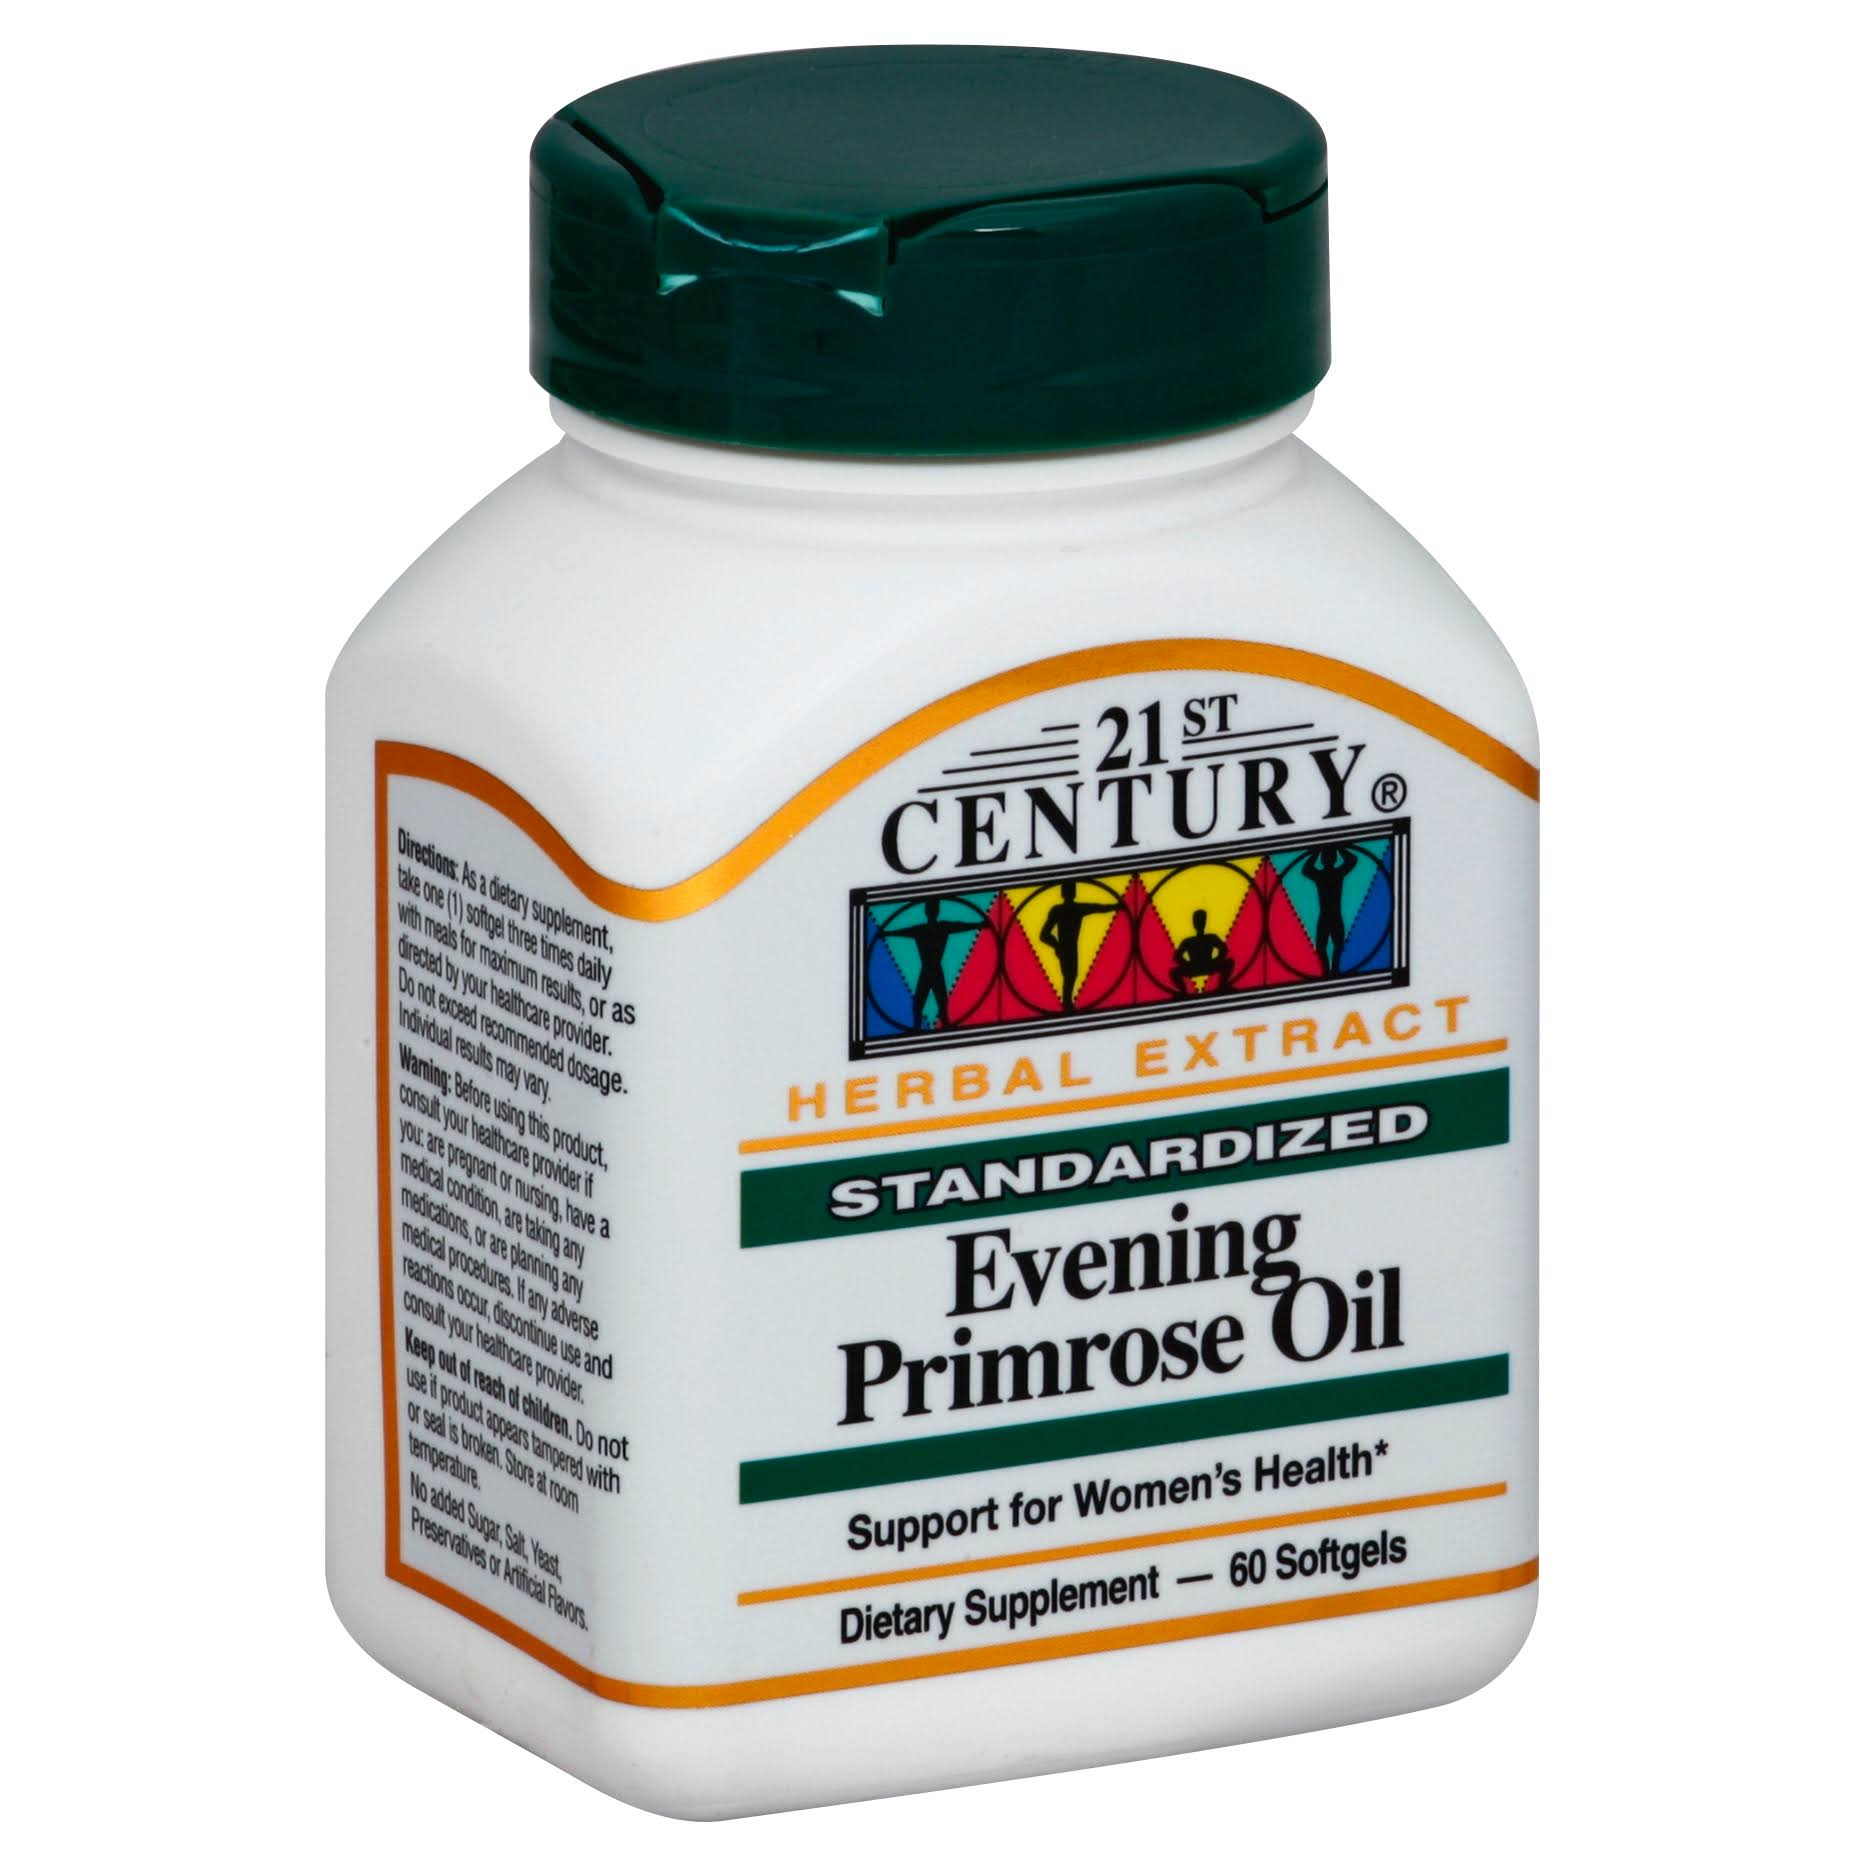 21st Century Evening Primrose Oil Supplement - 60 Count